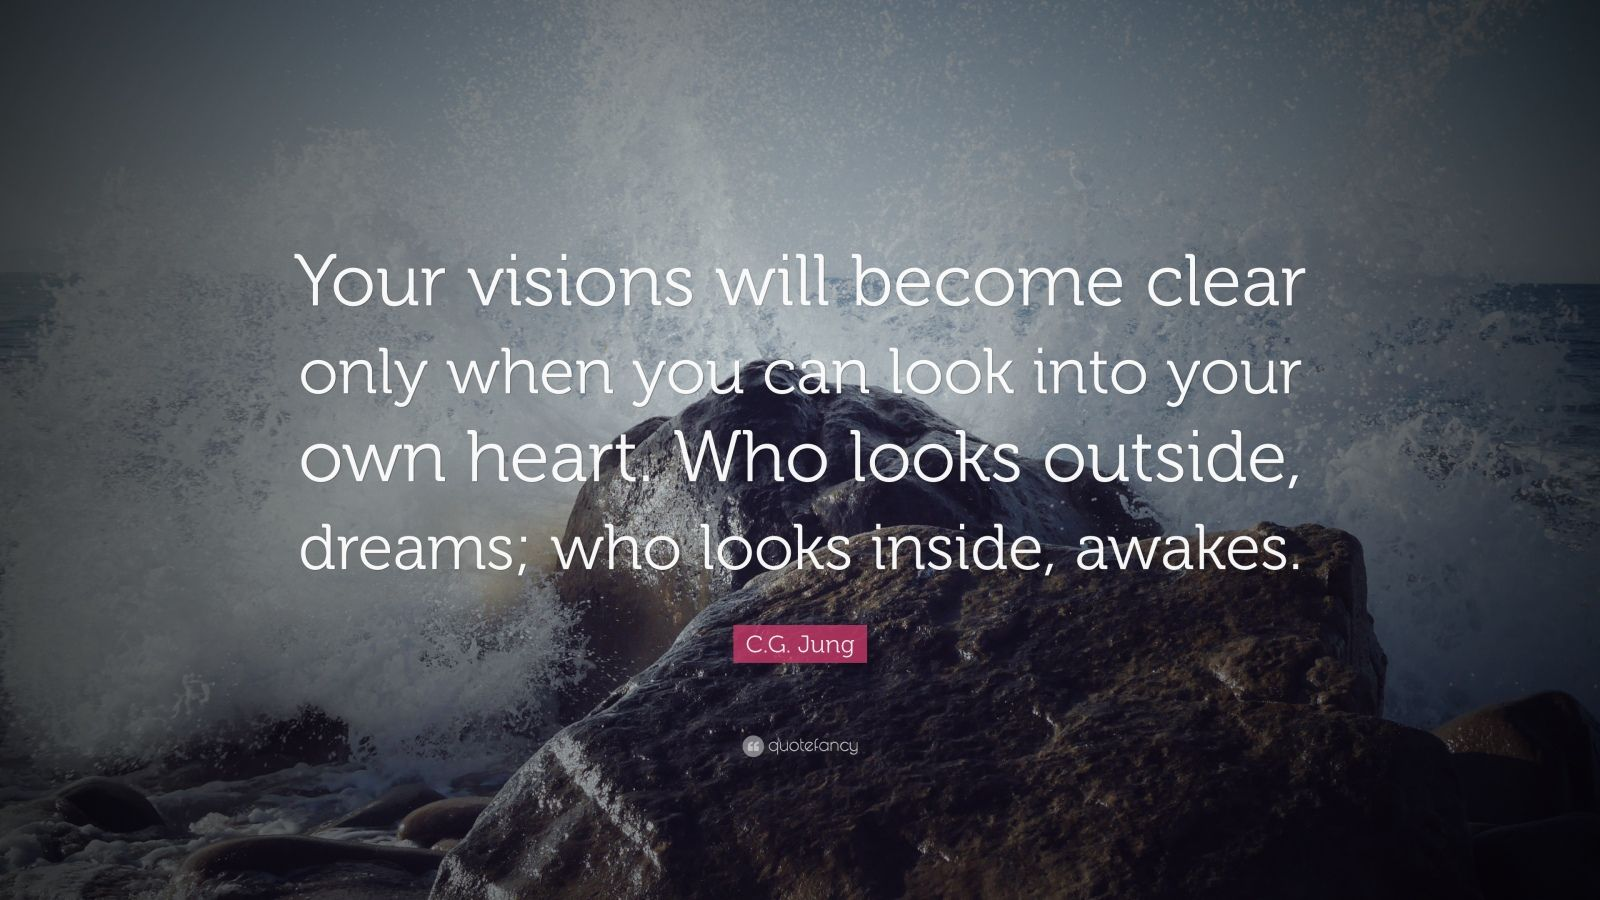 """C.G. Jung Quote: """"Your visions will become clear only when you can look into your own heart. Who looks outside, dreams; who looks inside, awakes."""""""